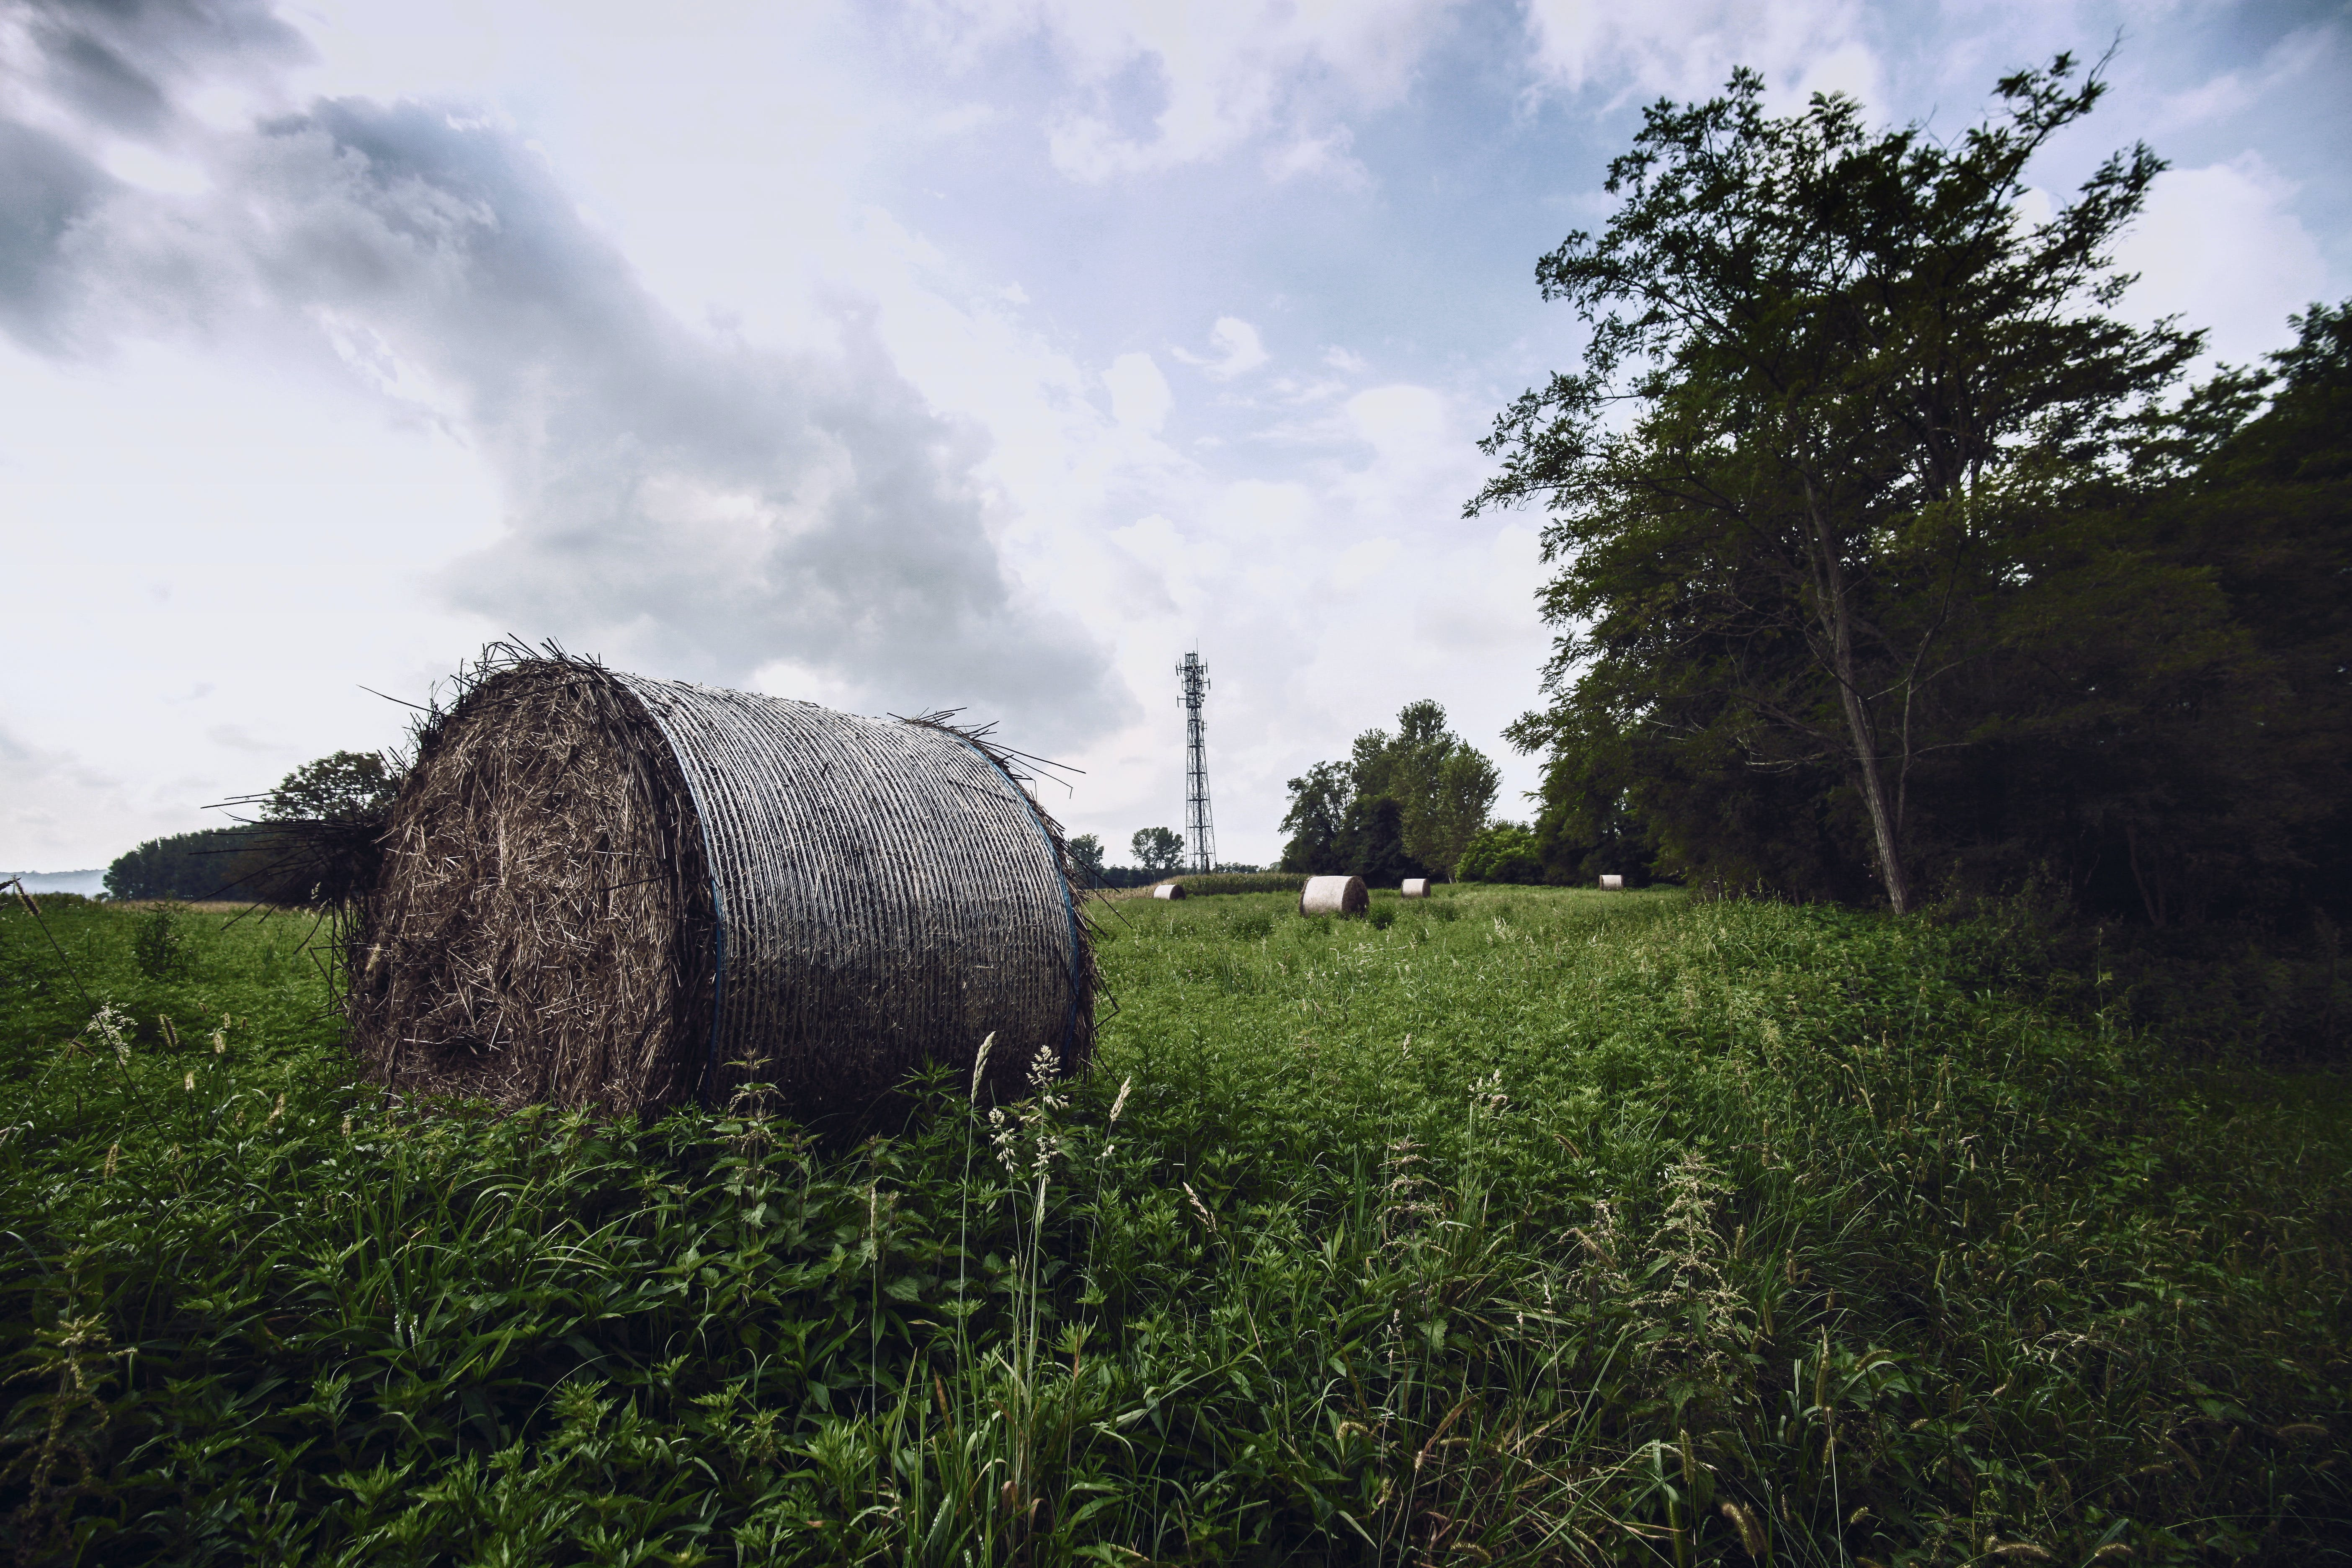 Hay Rolls on Green Grass Under White and Blue Sky